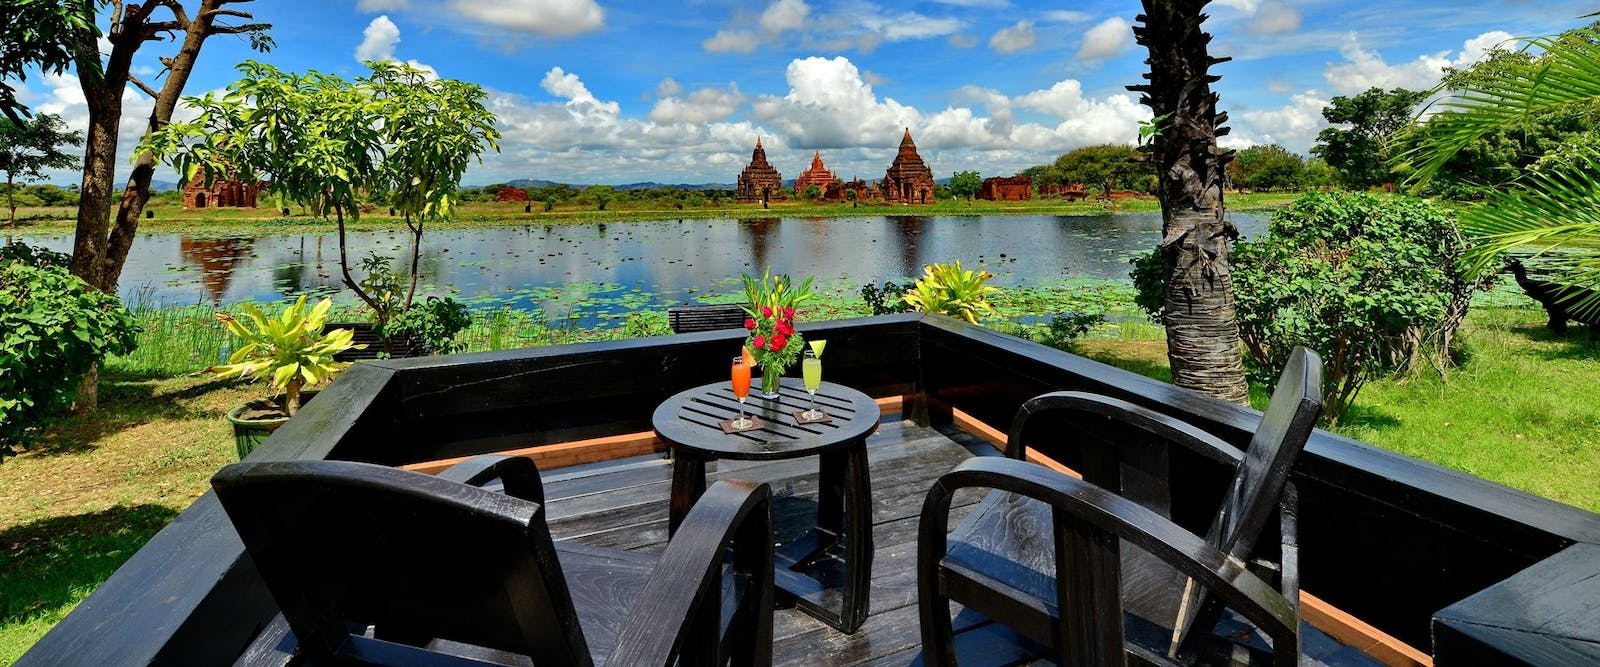 Temple lake view from Jasmine Villa terrace at Aureum Palace Hotel Bagan